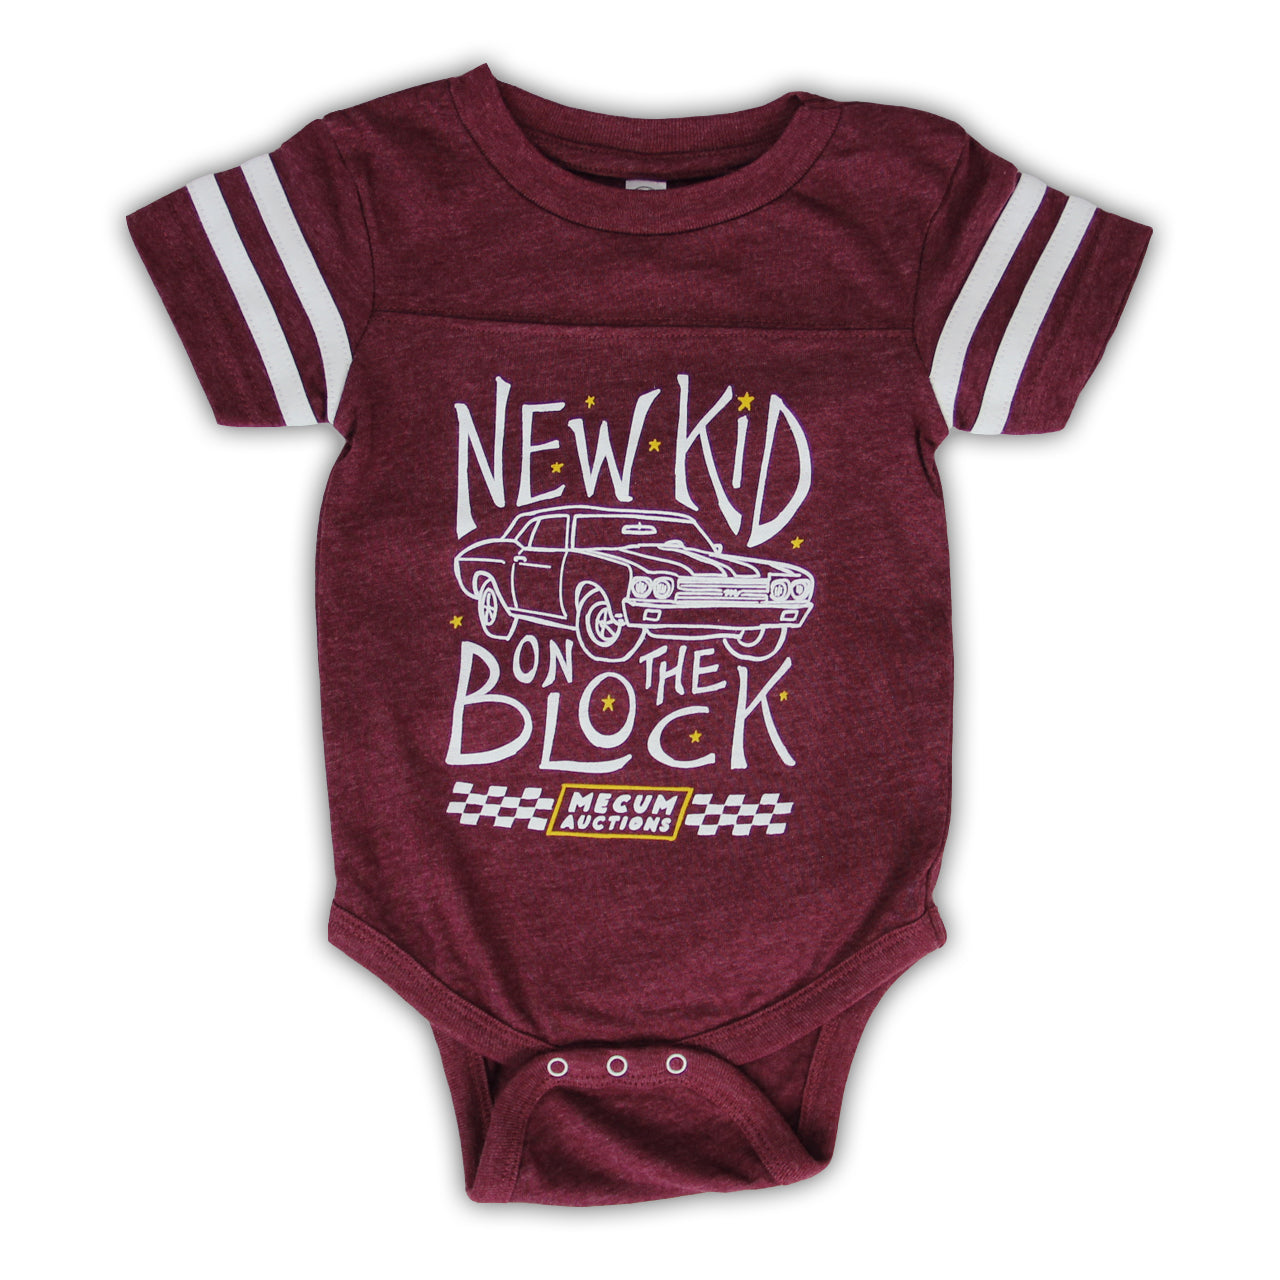 picture of mecum auctions 2020 new kid on the block onesie